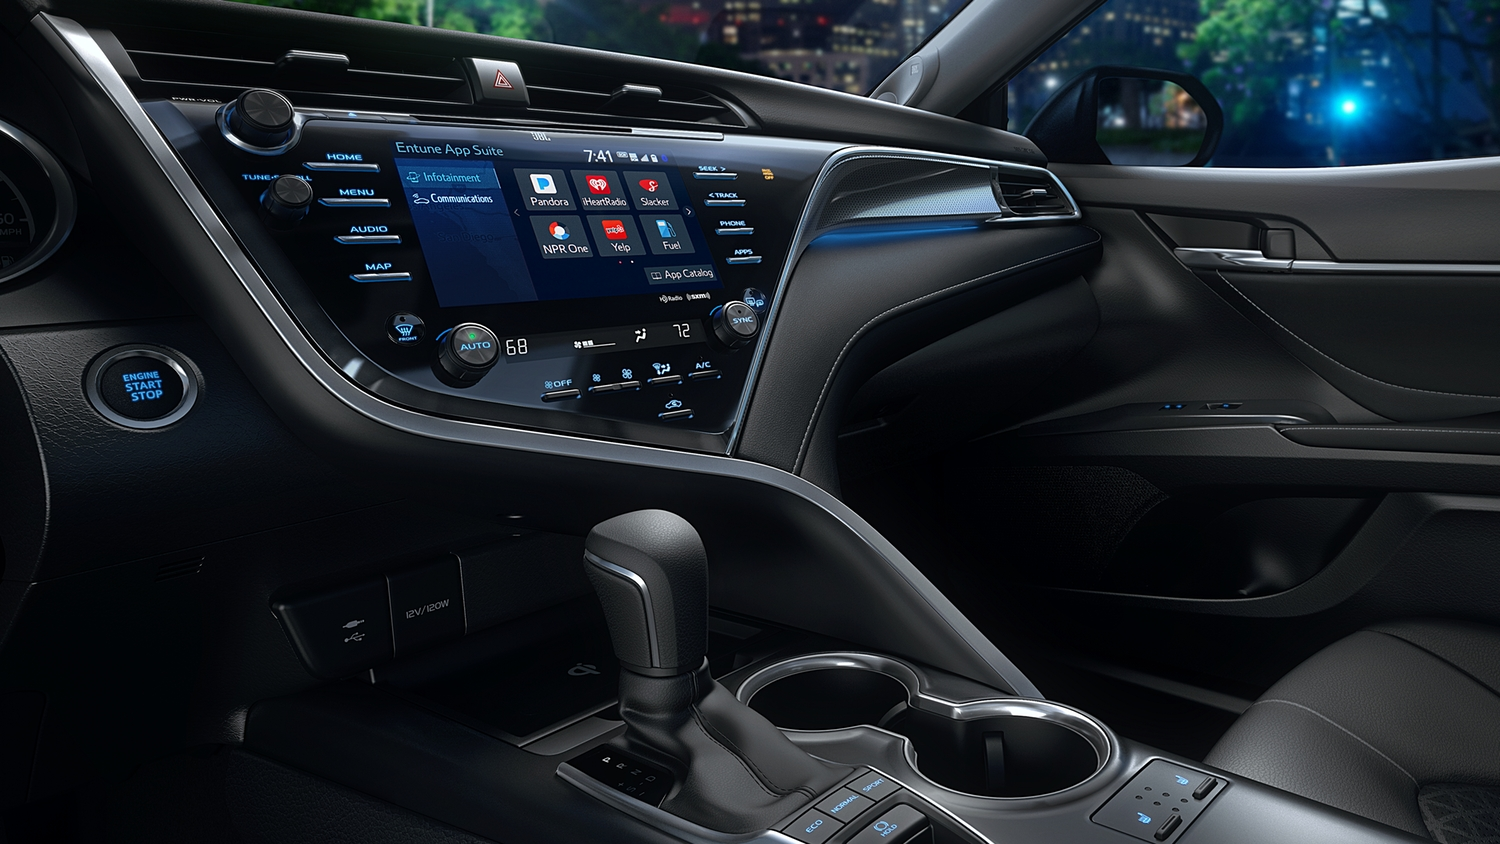 Tech Features in the 2019 Camry